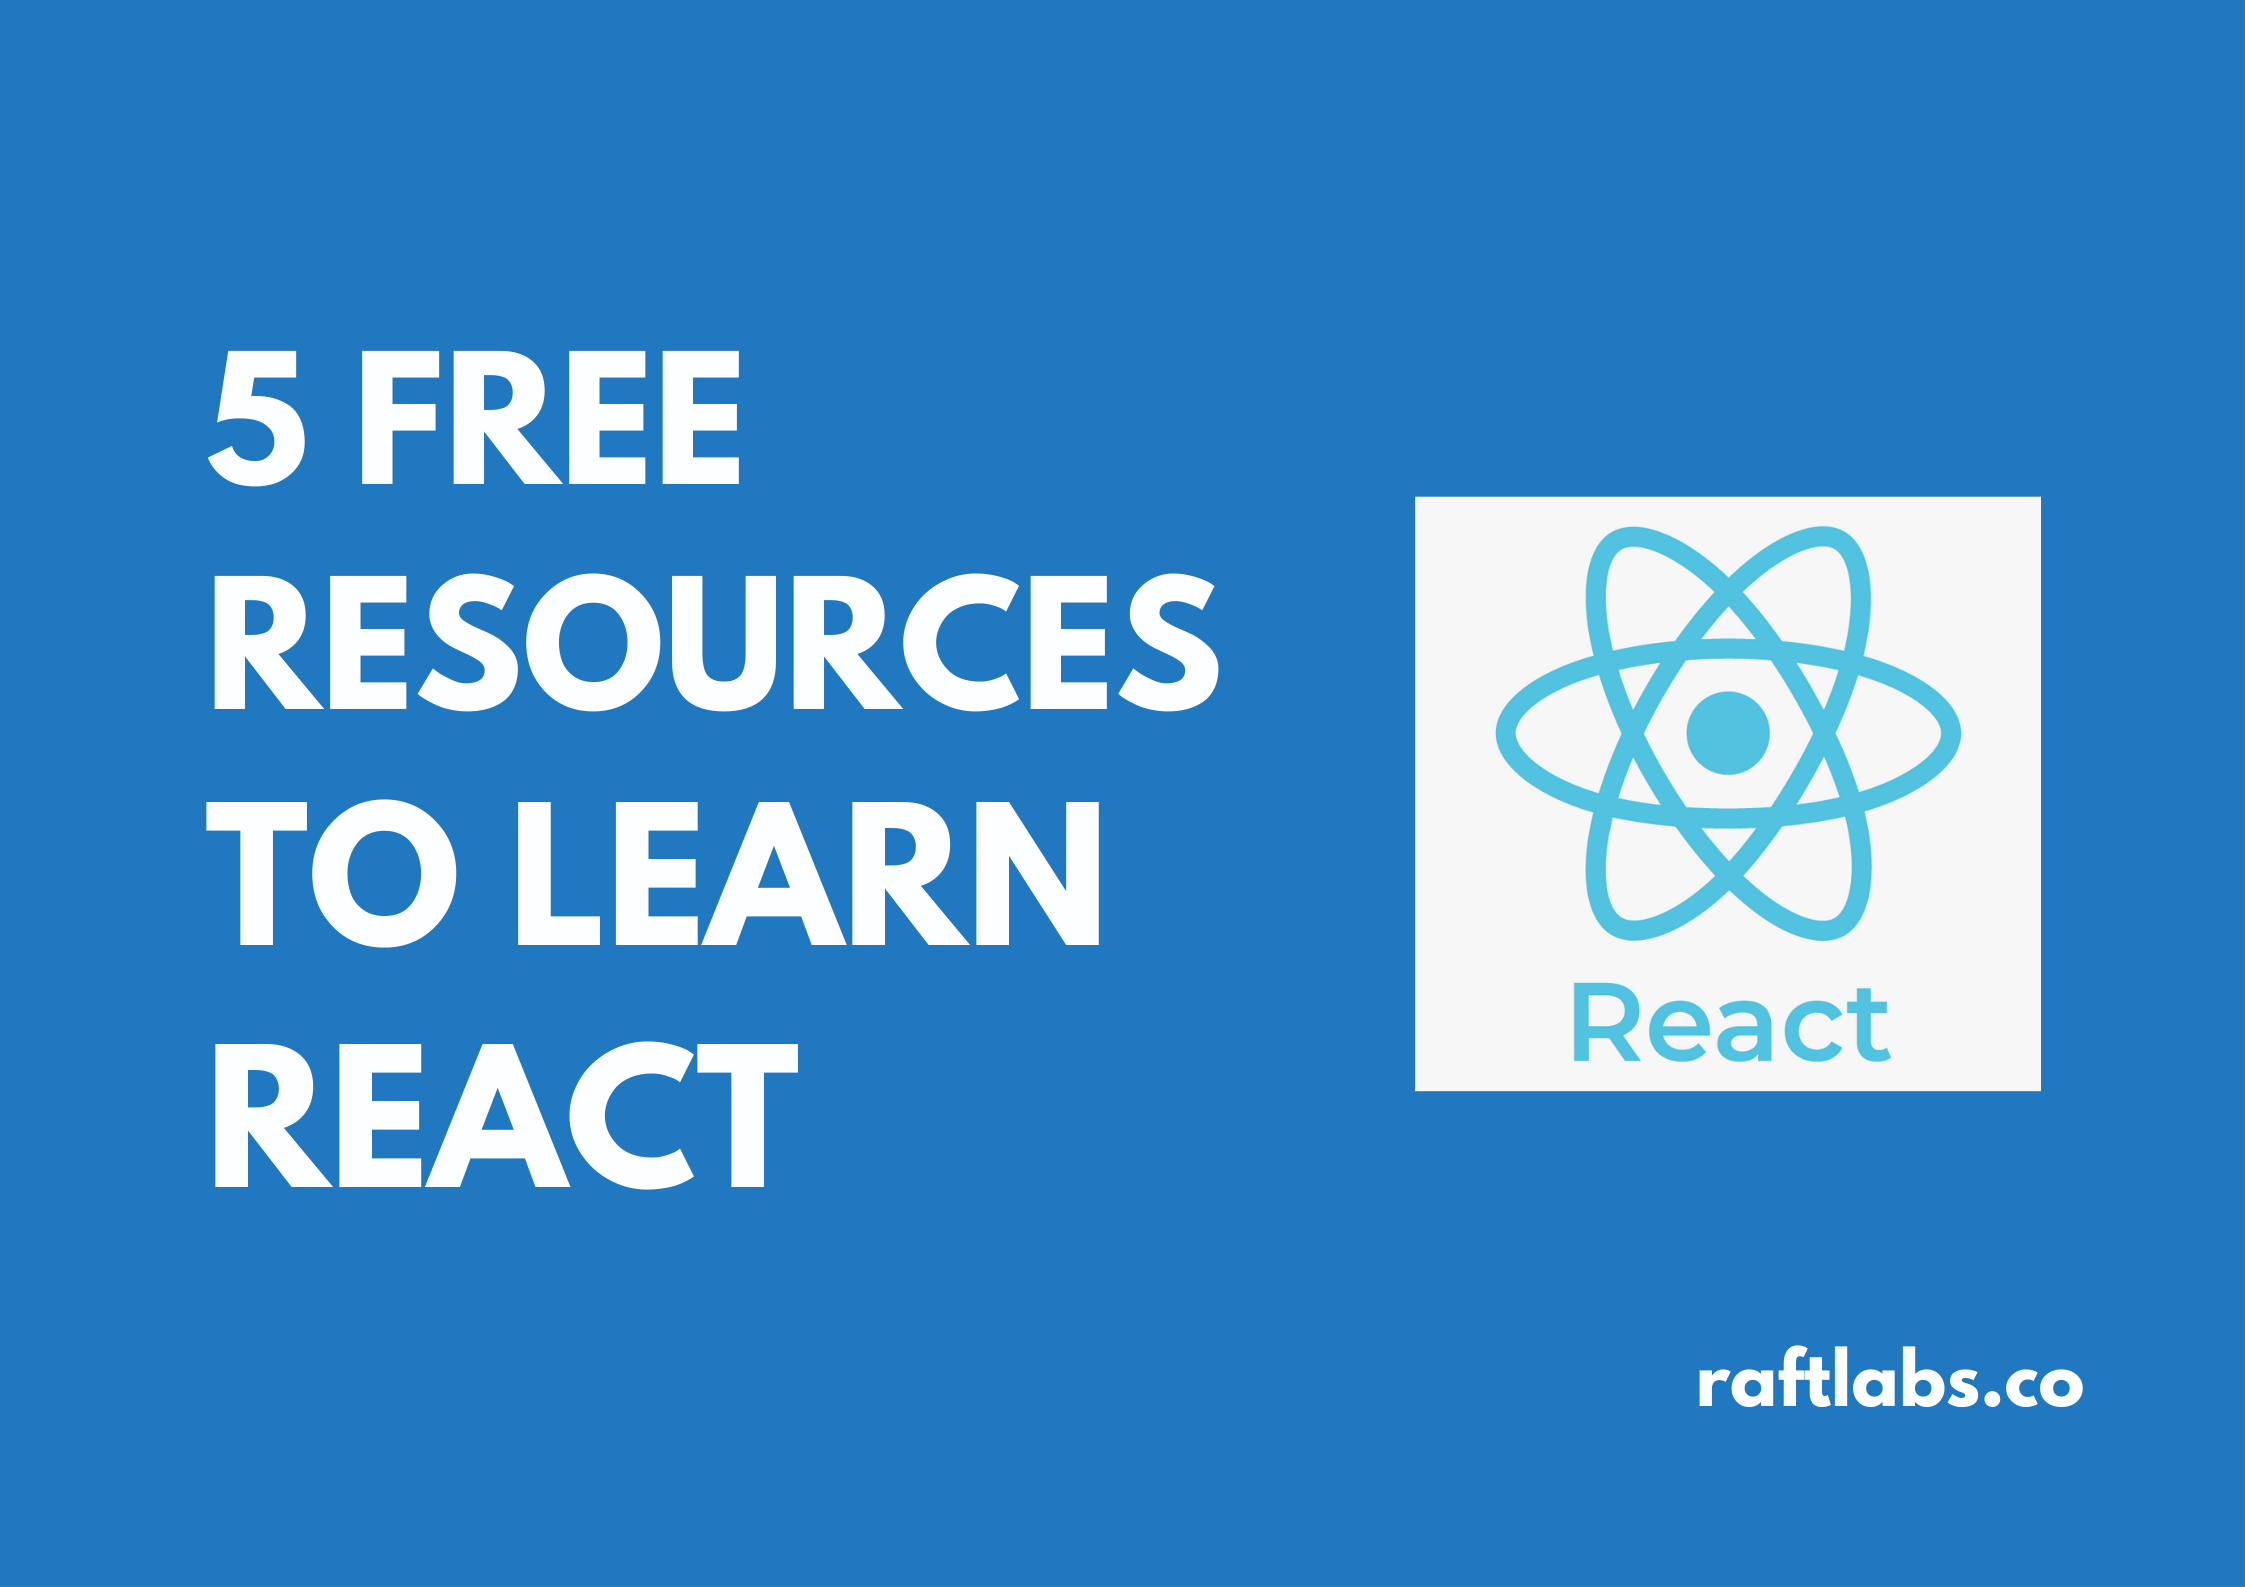 5 free resources to learn React.js with React logo - raftlabs.co